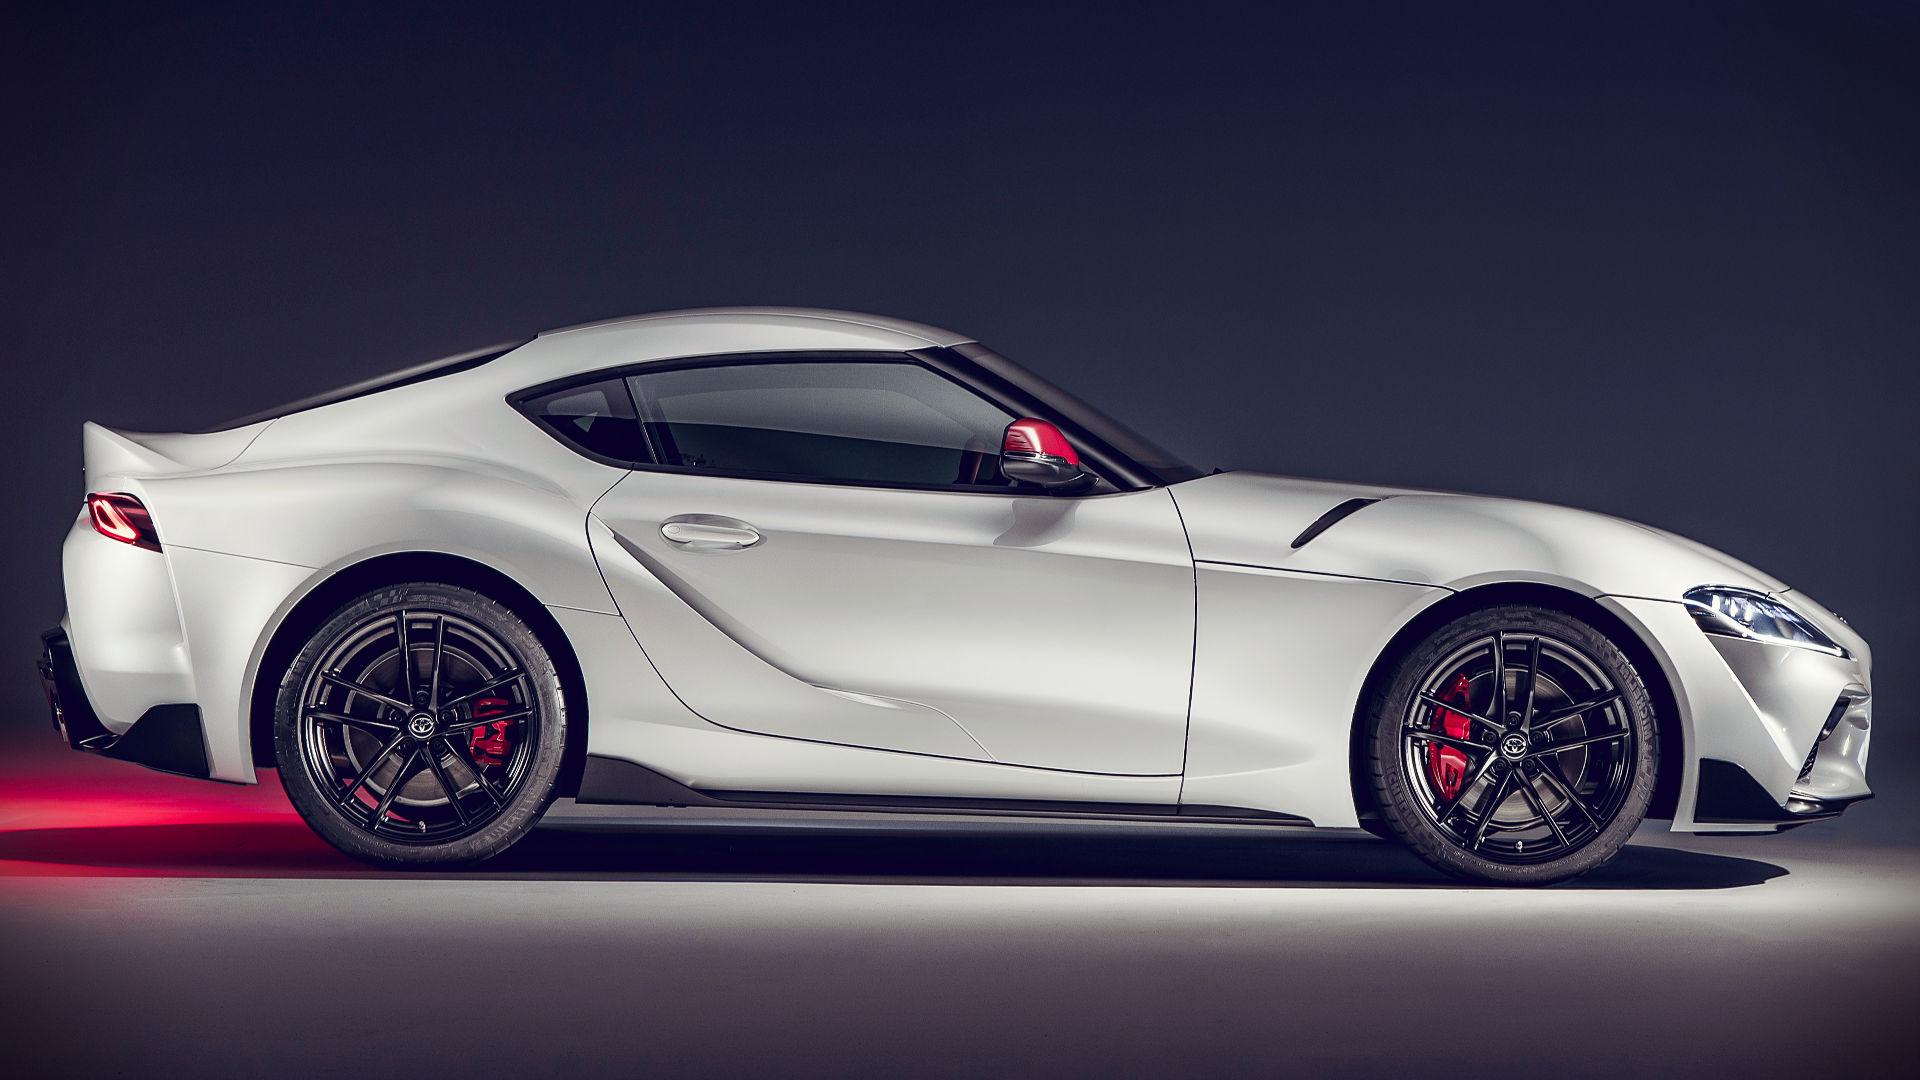 Toyota Supra Turbo 2020 Wallpaper Hd